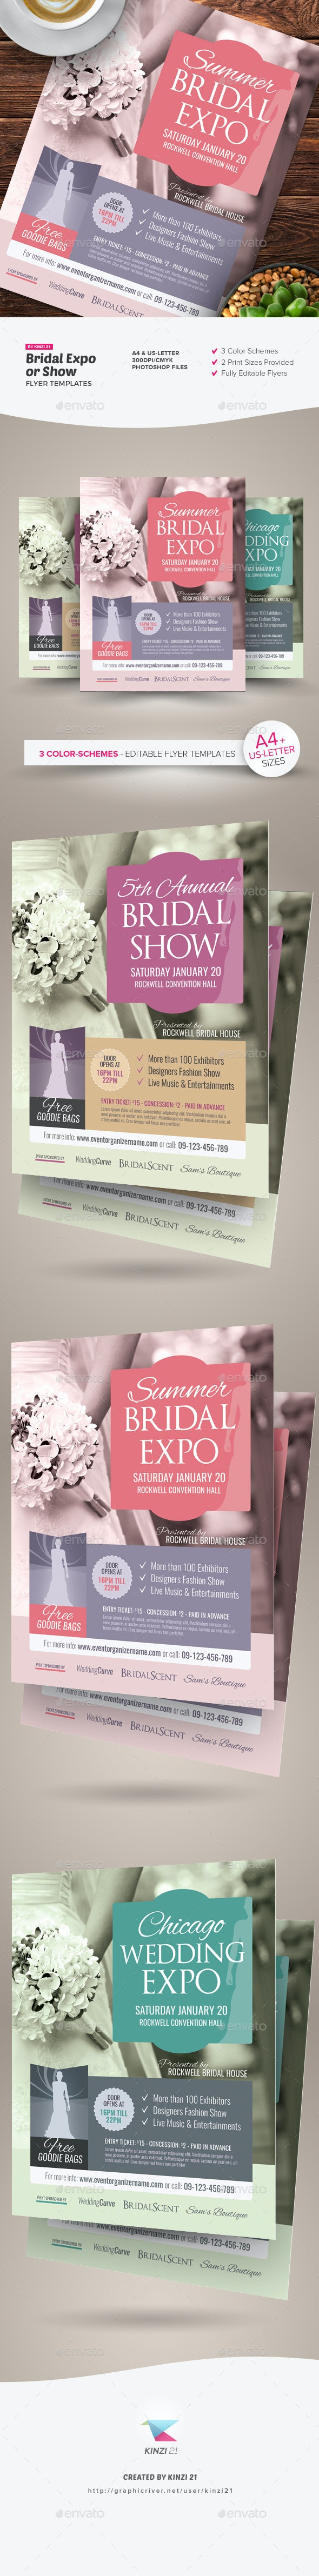 Bridal Expo or Show Flyer Templates by kinzi21 | GraphicRiver